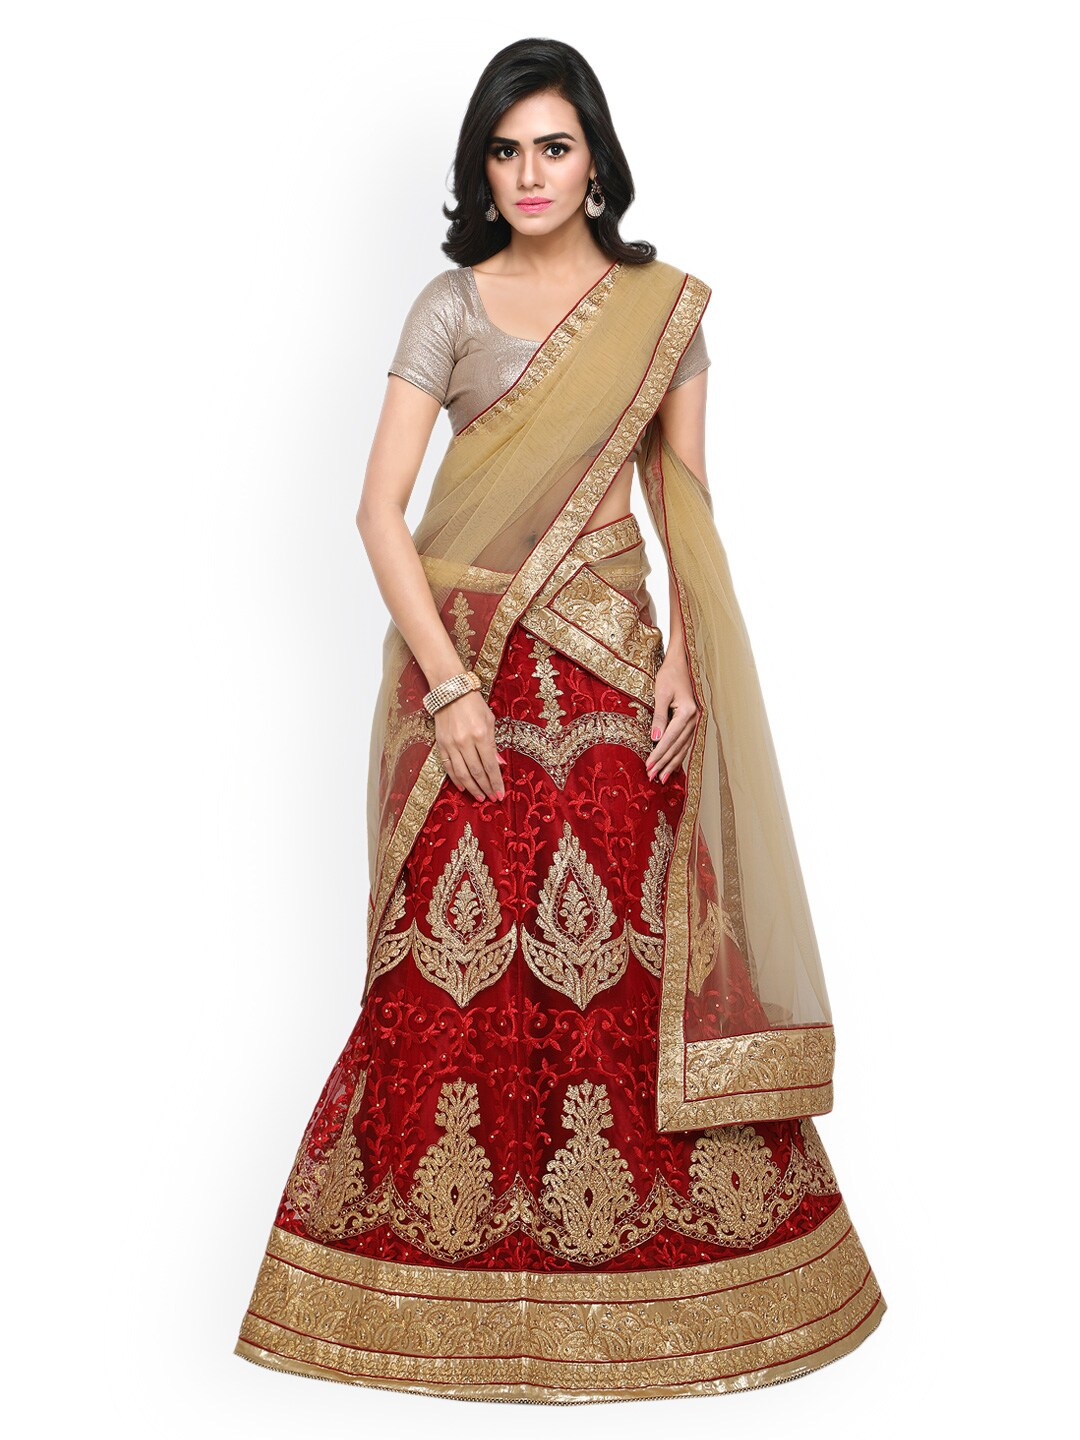 Rajesh Silk Mills Red & Beige Embroidered Unstitched Lehenga Choli with Dupatta image